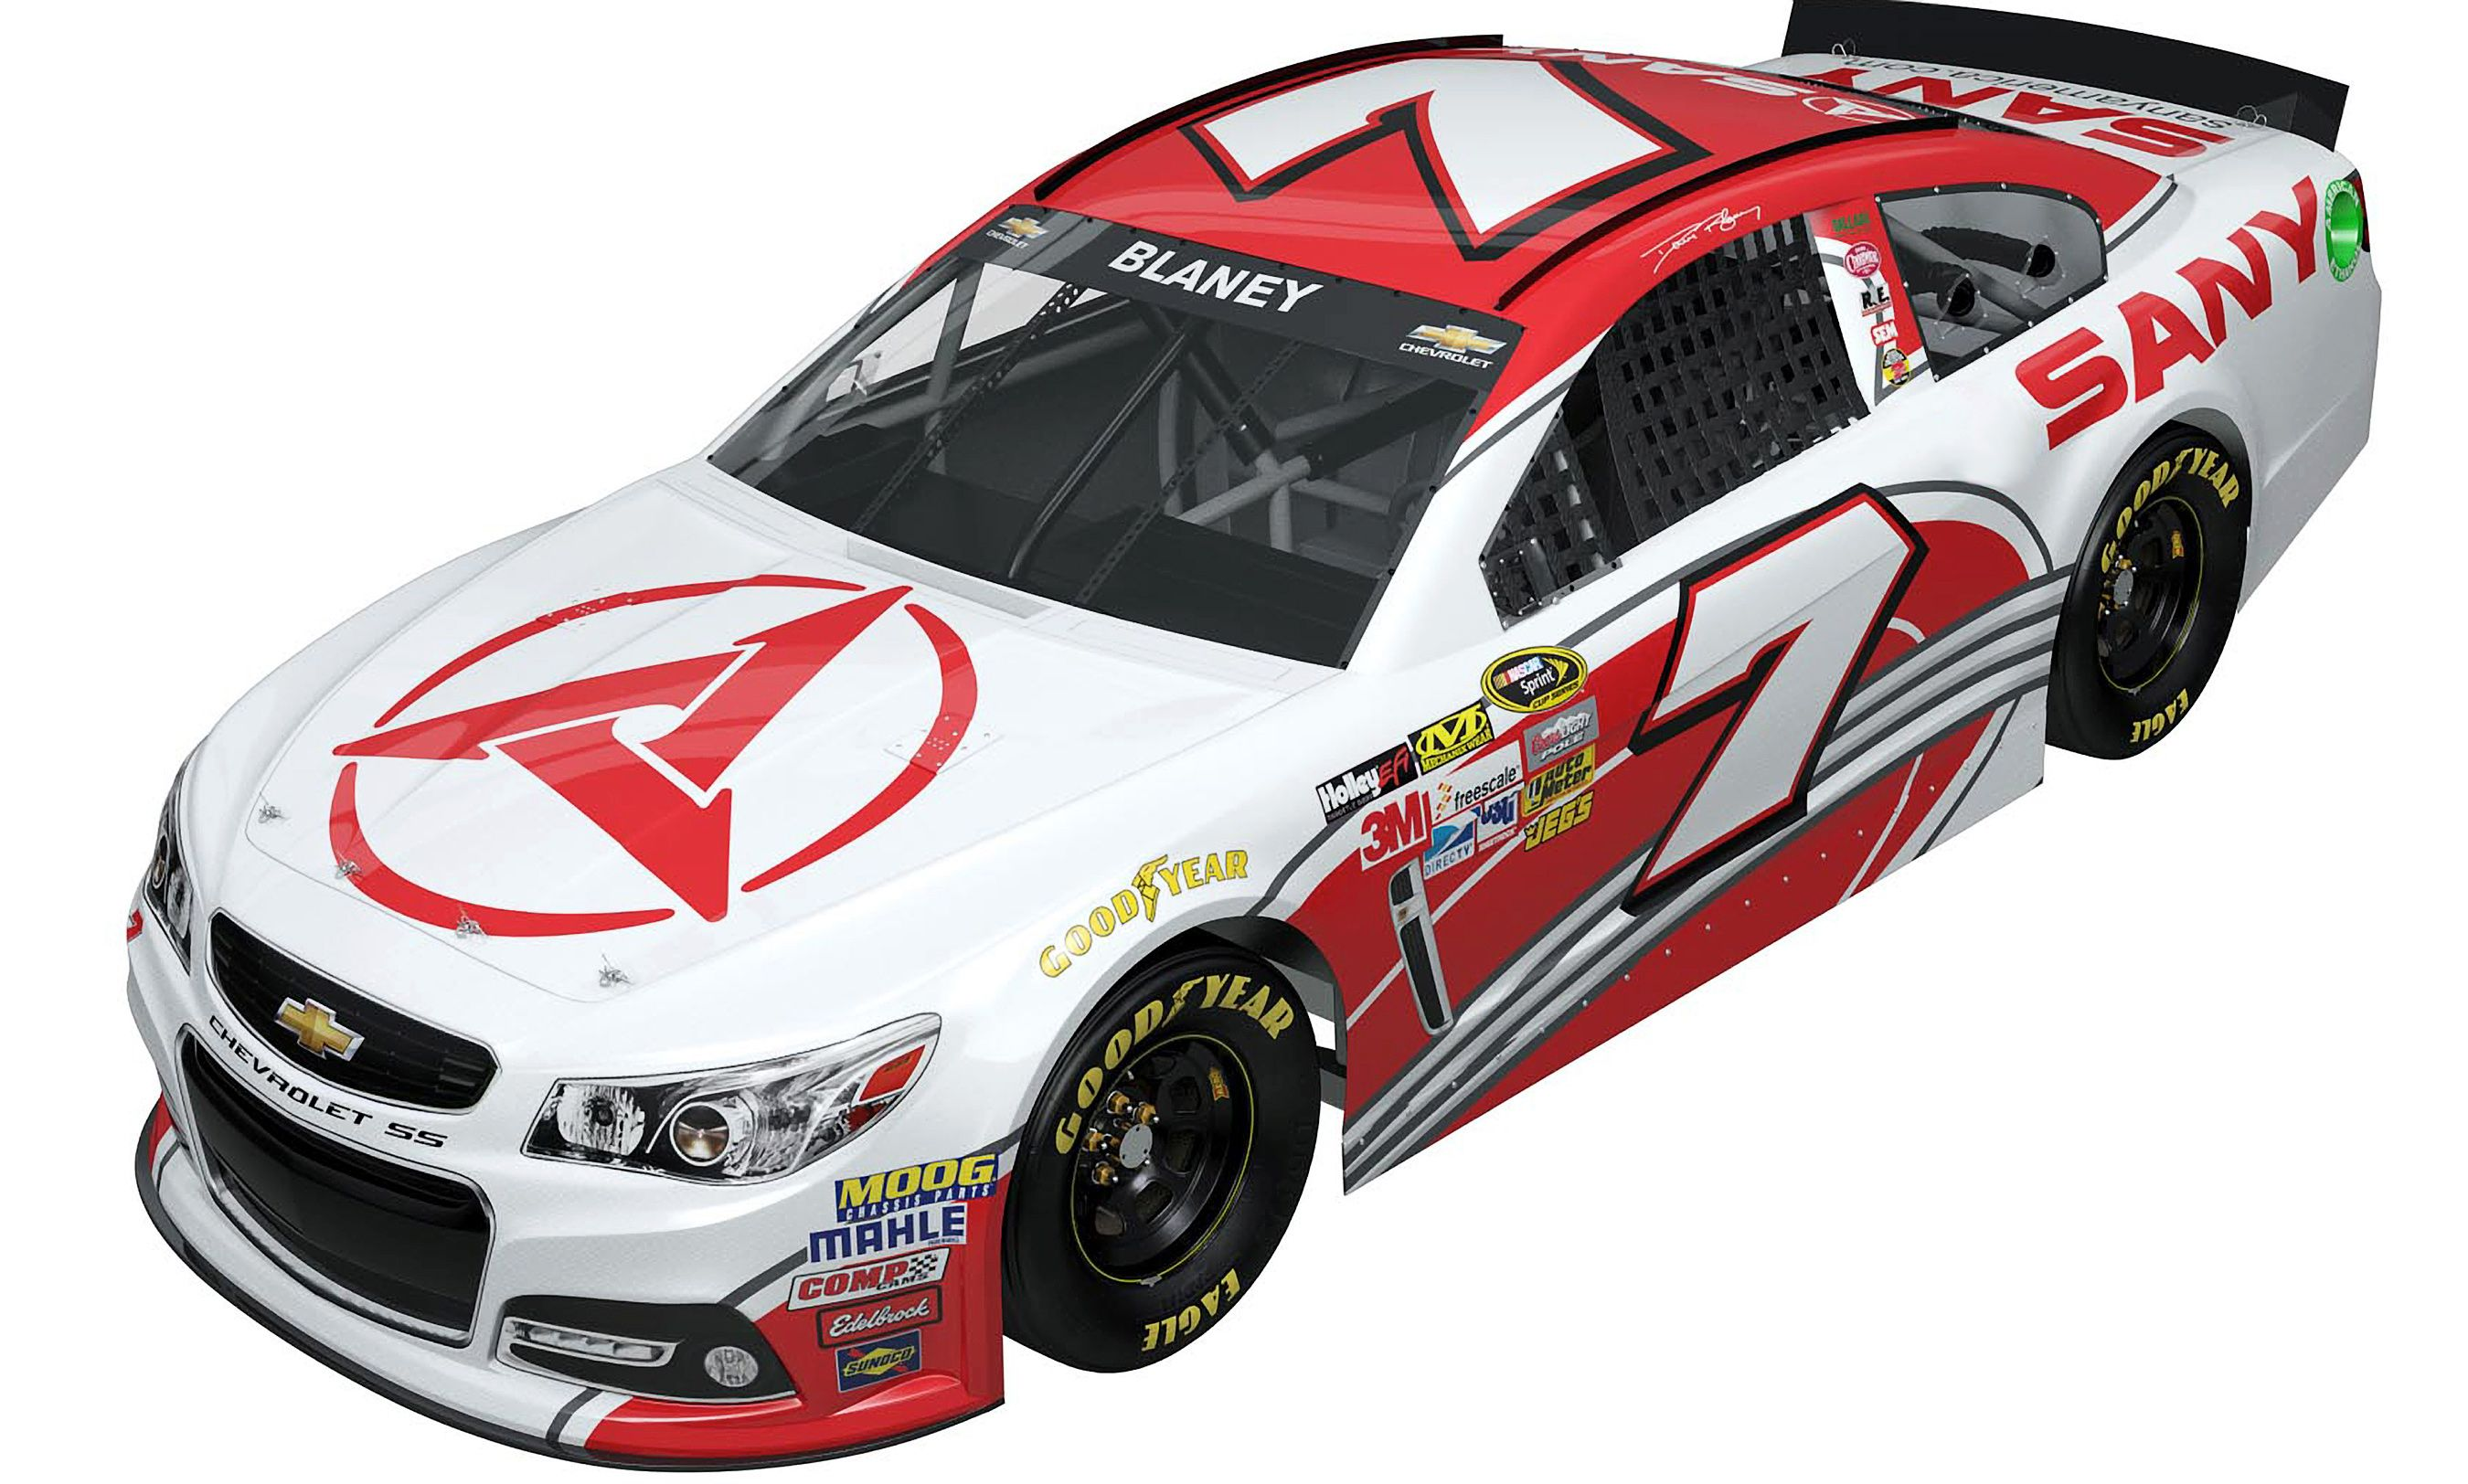 dave blaney s 7 sany chevy for 2013 dave blaney nascar racing pinterest